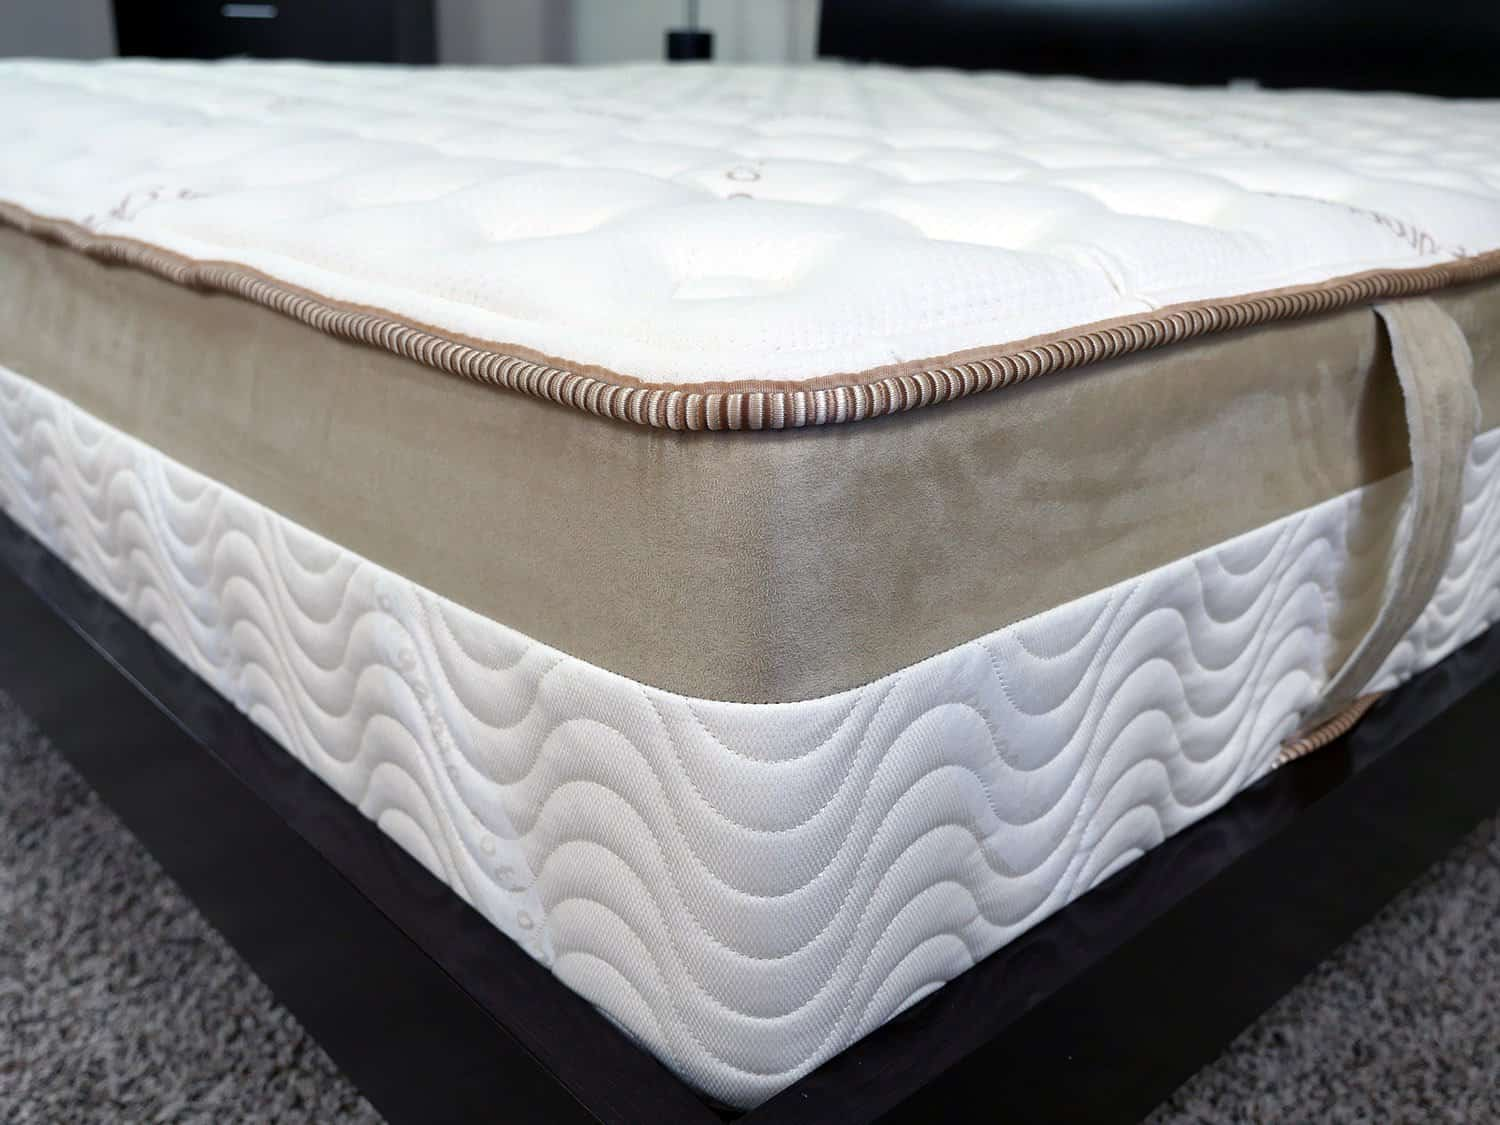 Best Natural Organic Mattress | Sleepopolis